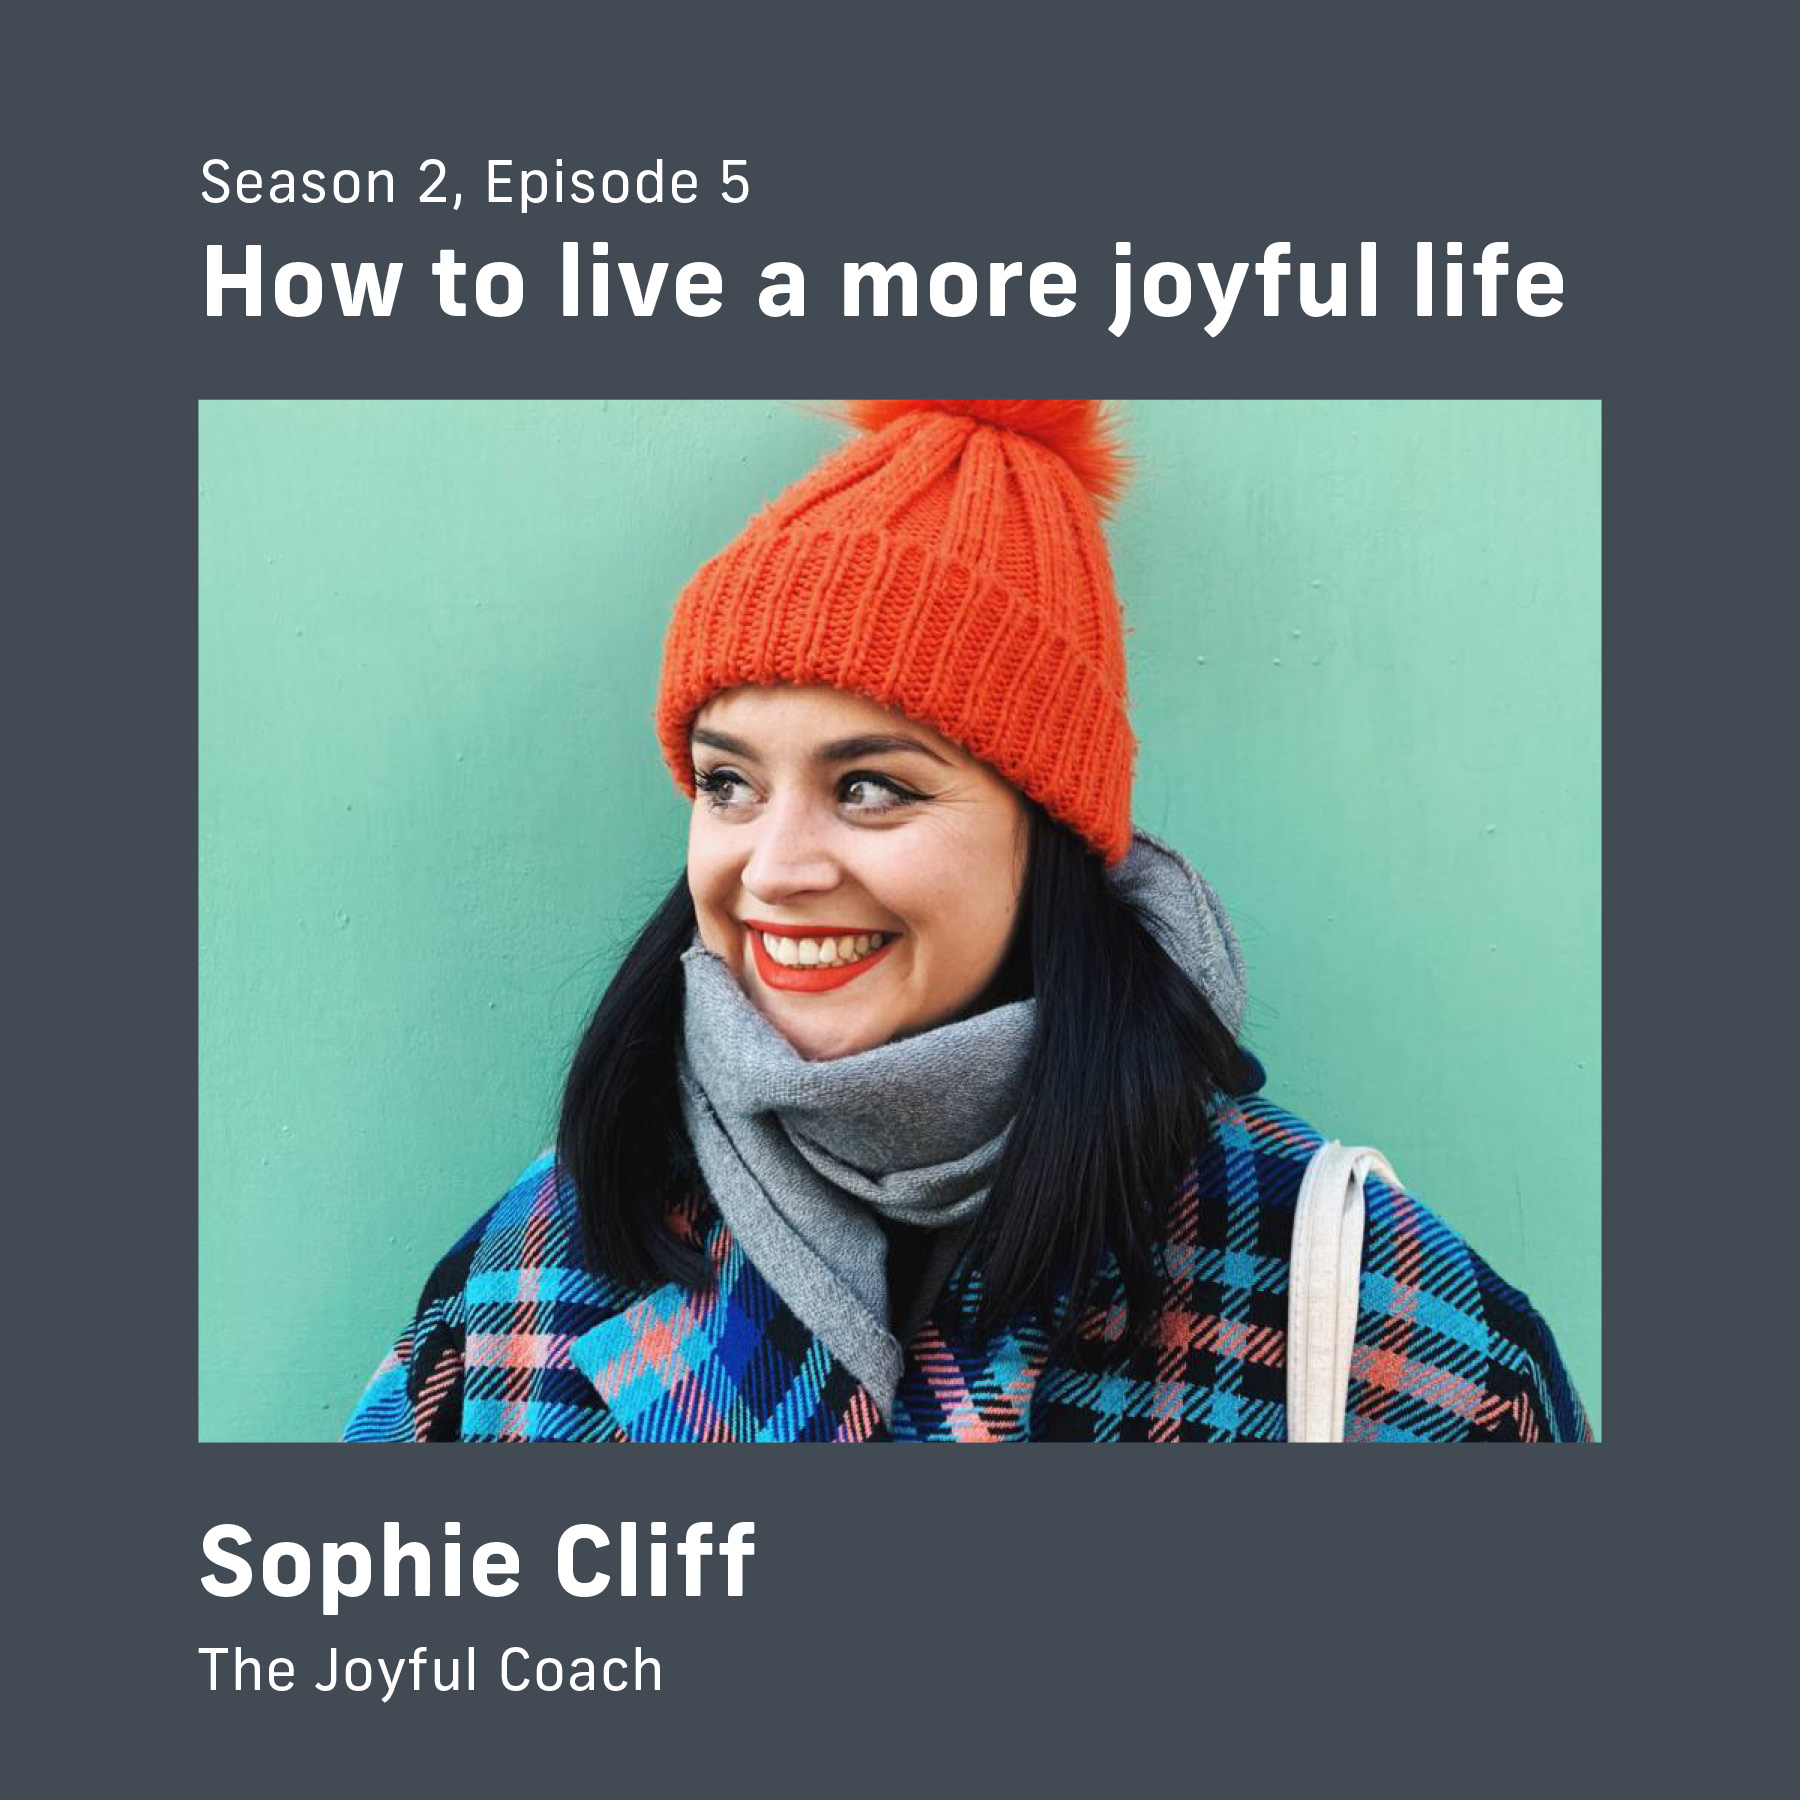 "Episode cover of Season 2 Episode 5 with Sophie Cliff, The Joyful Coach. The title is ""How to live a more joyful life""."